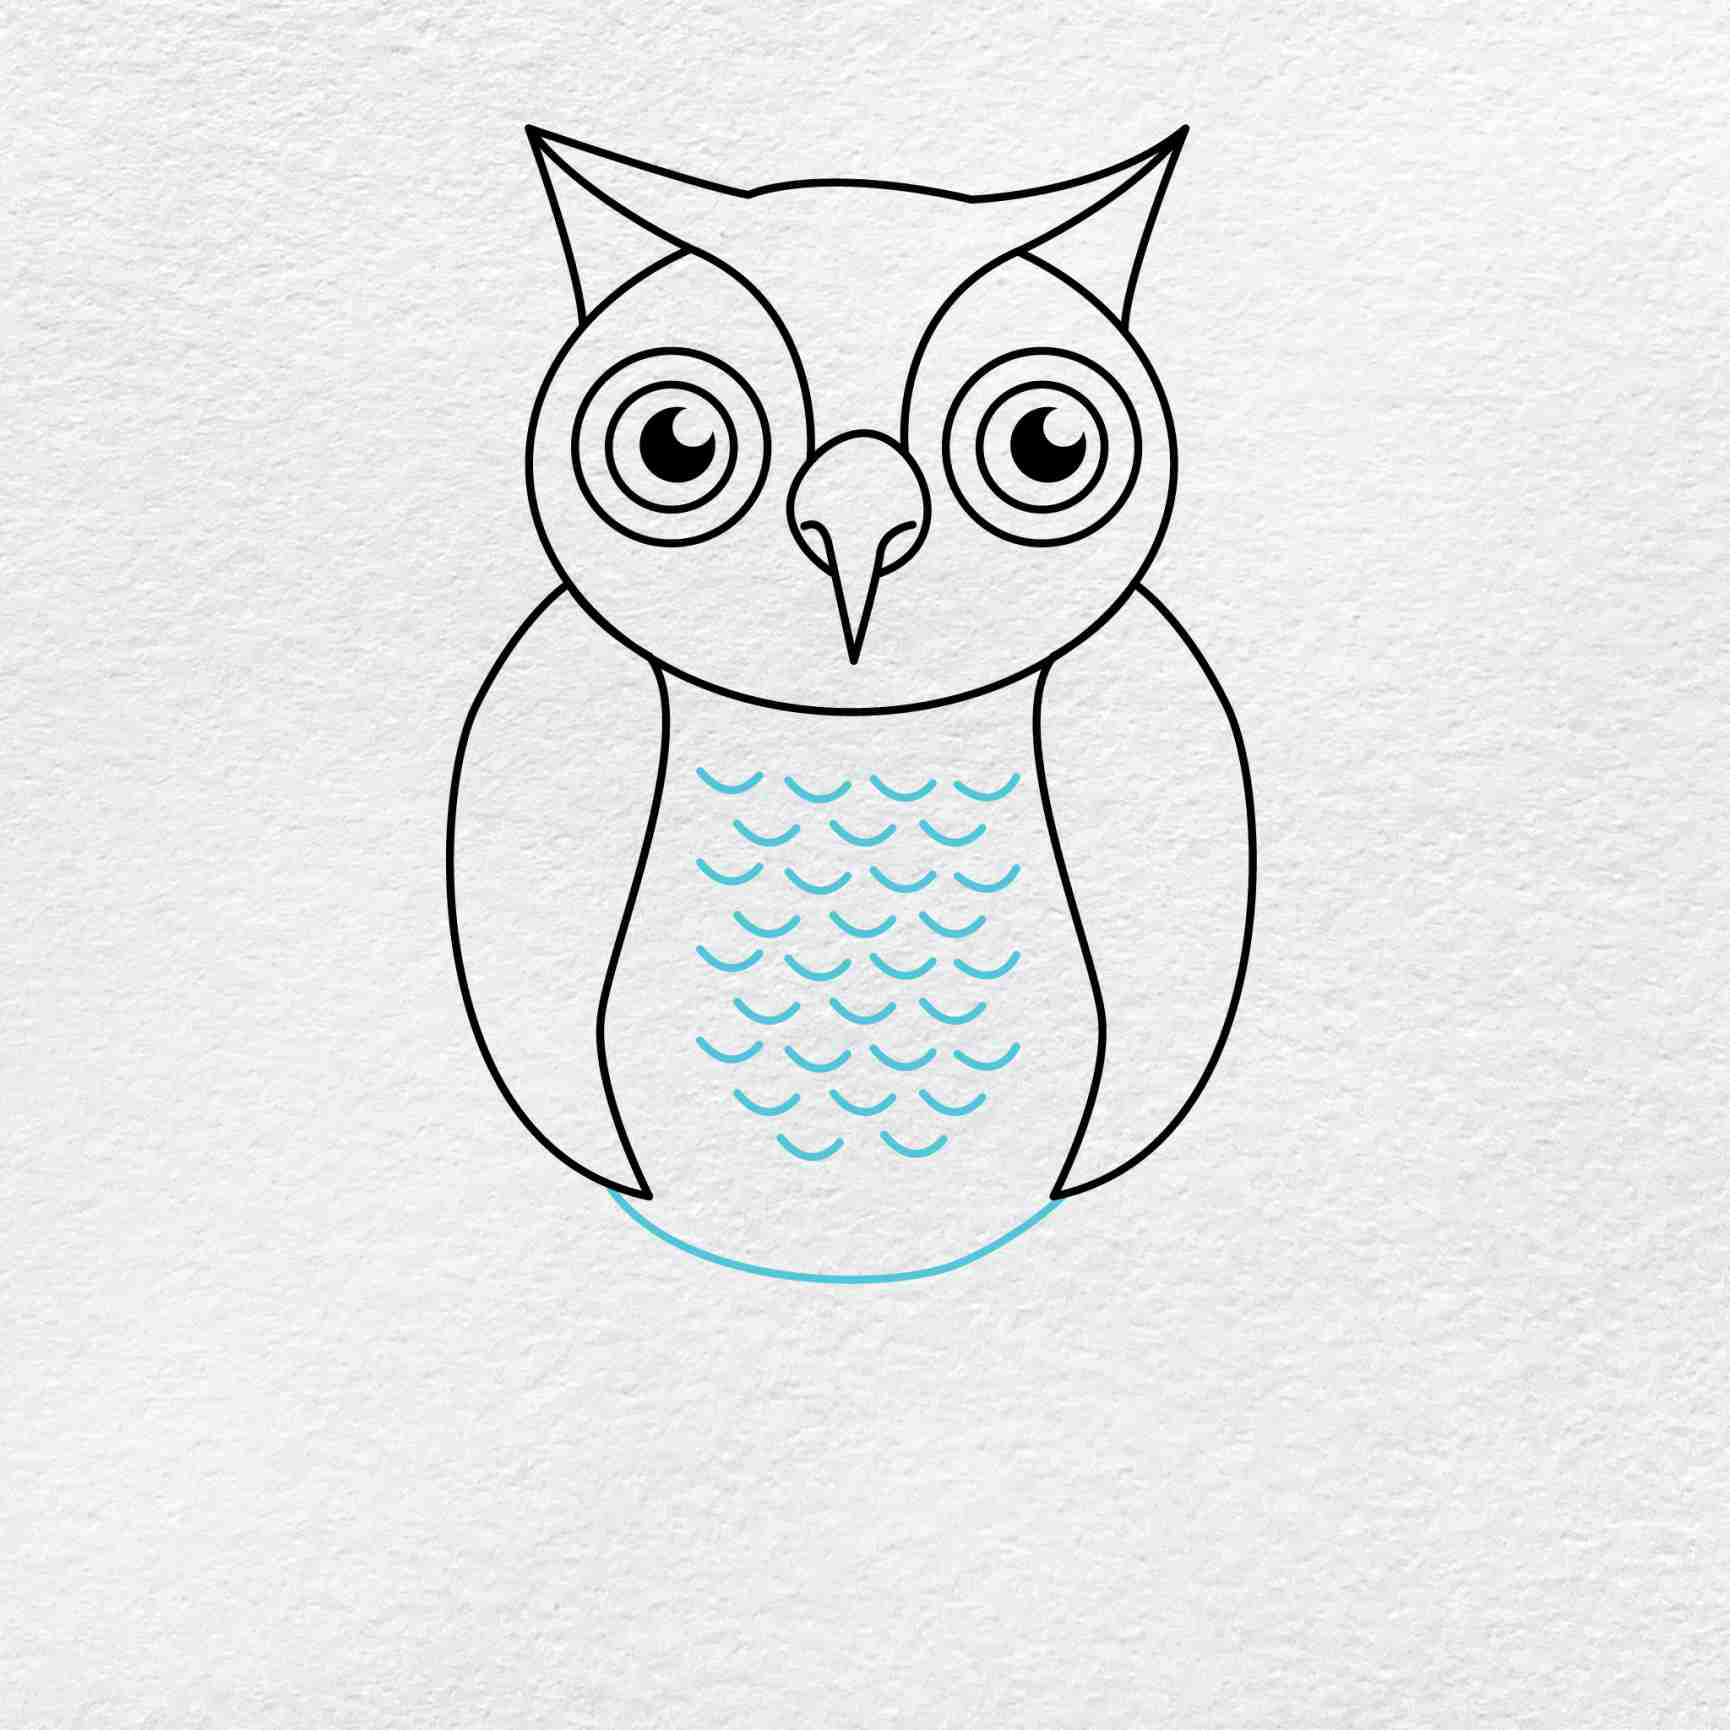 How To Draw An Owl: Step 6